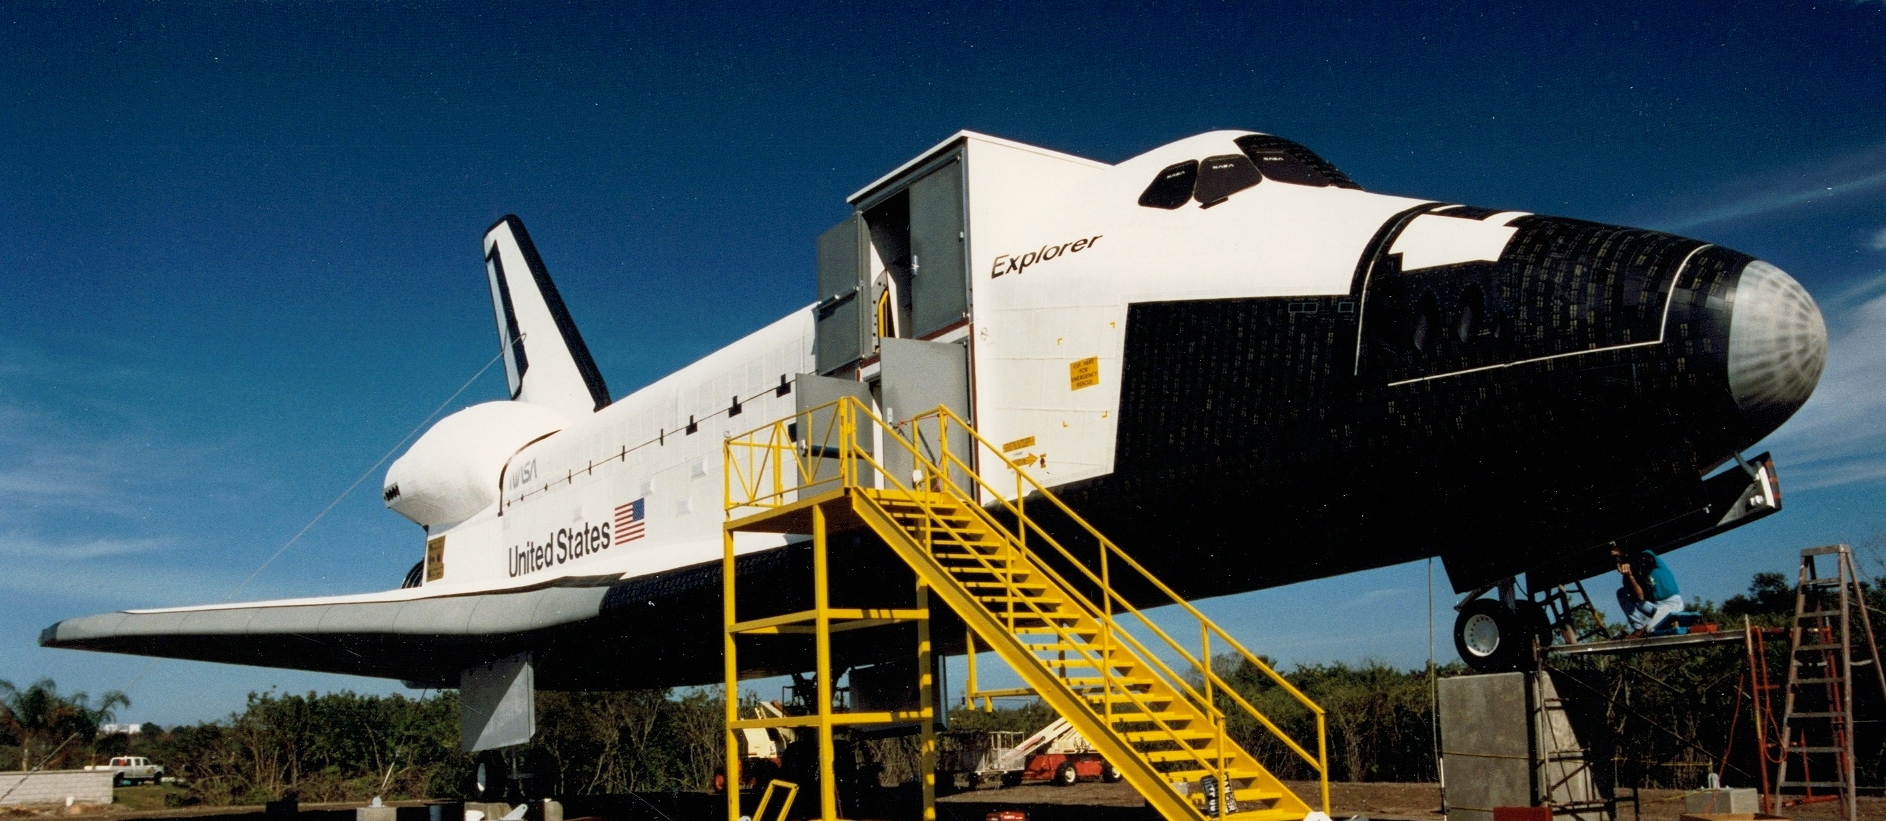 space shuttle explorer is real - photo #39